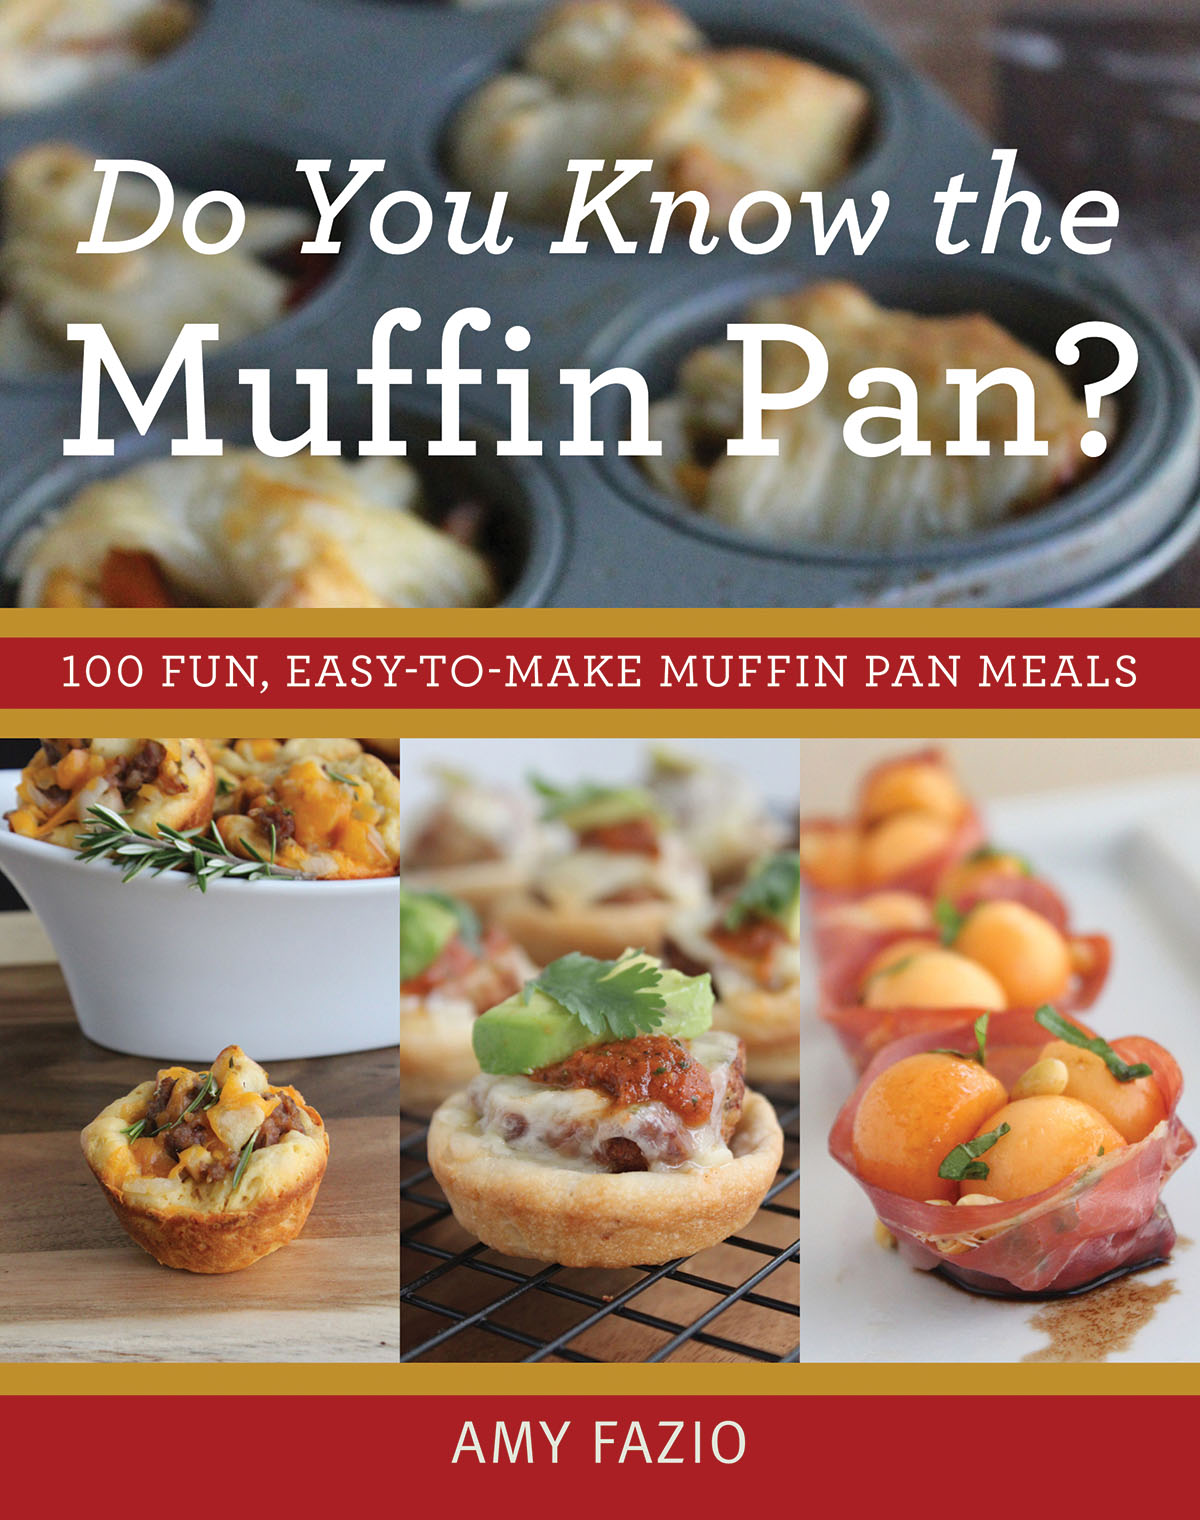 Do you know the muffin pan newsouth books amy fazios debut book do you know the muffin pan is a collection of creative easy to make recipes using that tried and true kitchen staple the muffin forumfinder Images